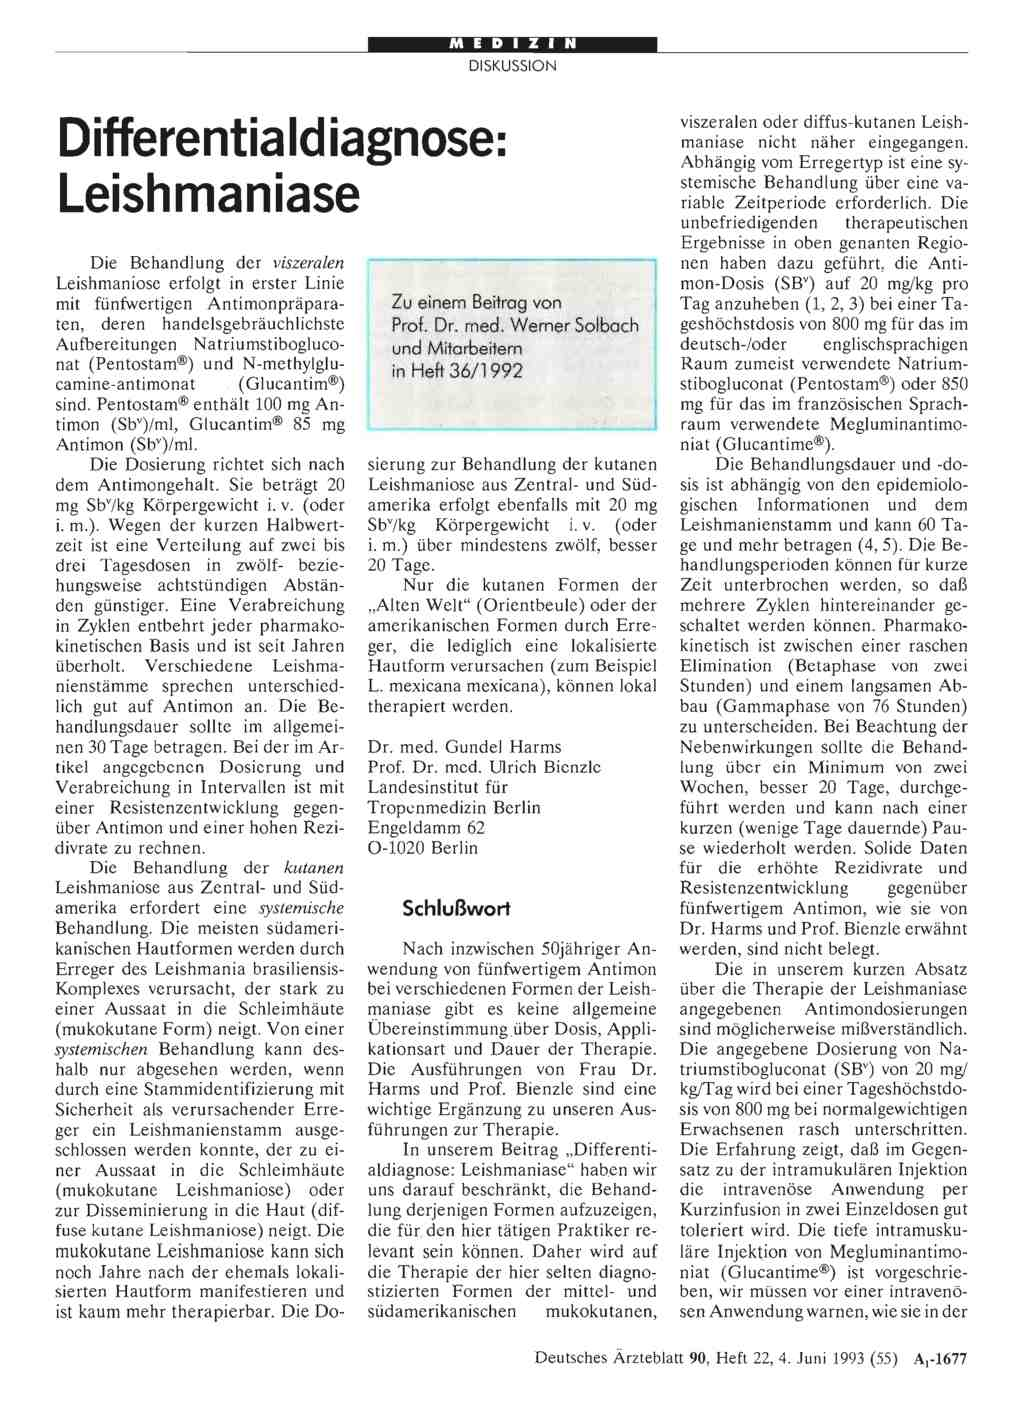 Differentialdiagnose: Leishmaniase: Schlußwort